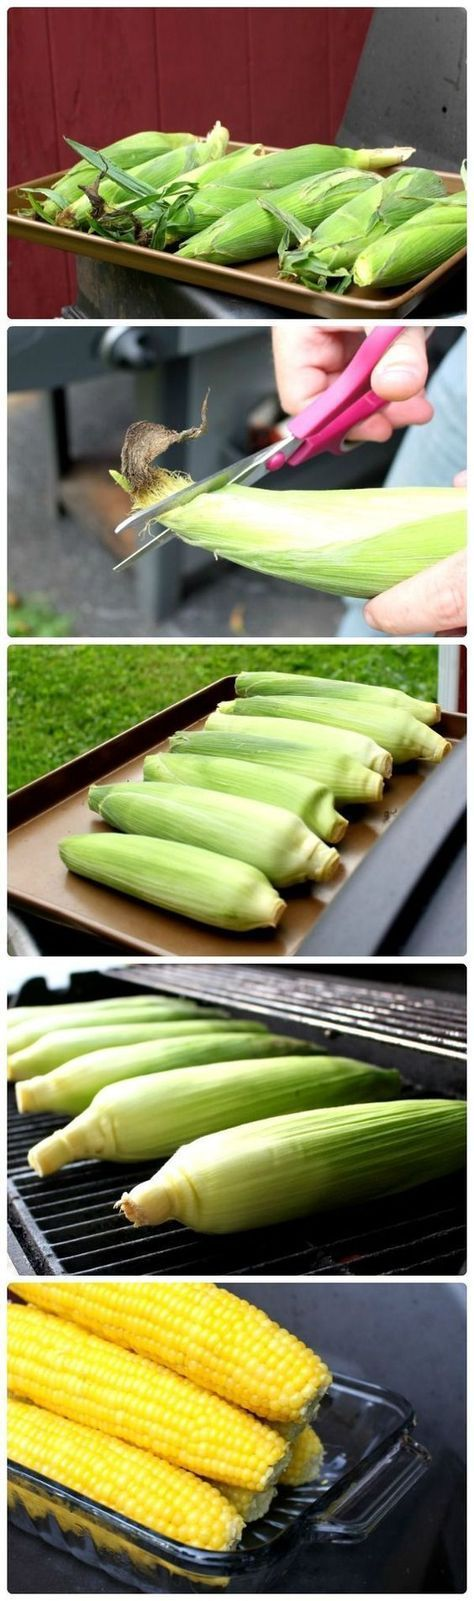 Perfect Grilled Sweet Corn | Preheat the grill to 500 F. Trim the silk off the tops of each ear. Do not shuck the ears. Place the ears on the grill and turn the flames down so they do not touch the ears. Grill for 30 minutes, turning every 10. Remove from